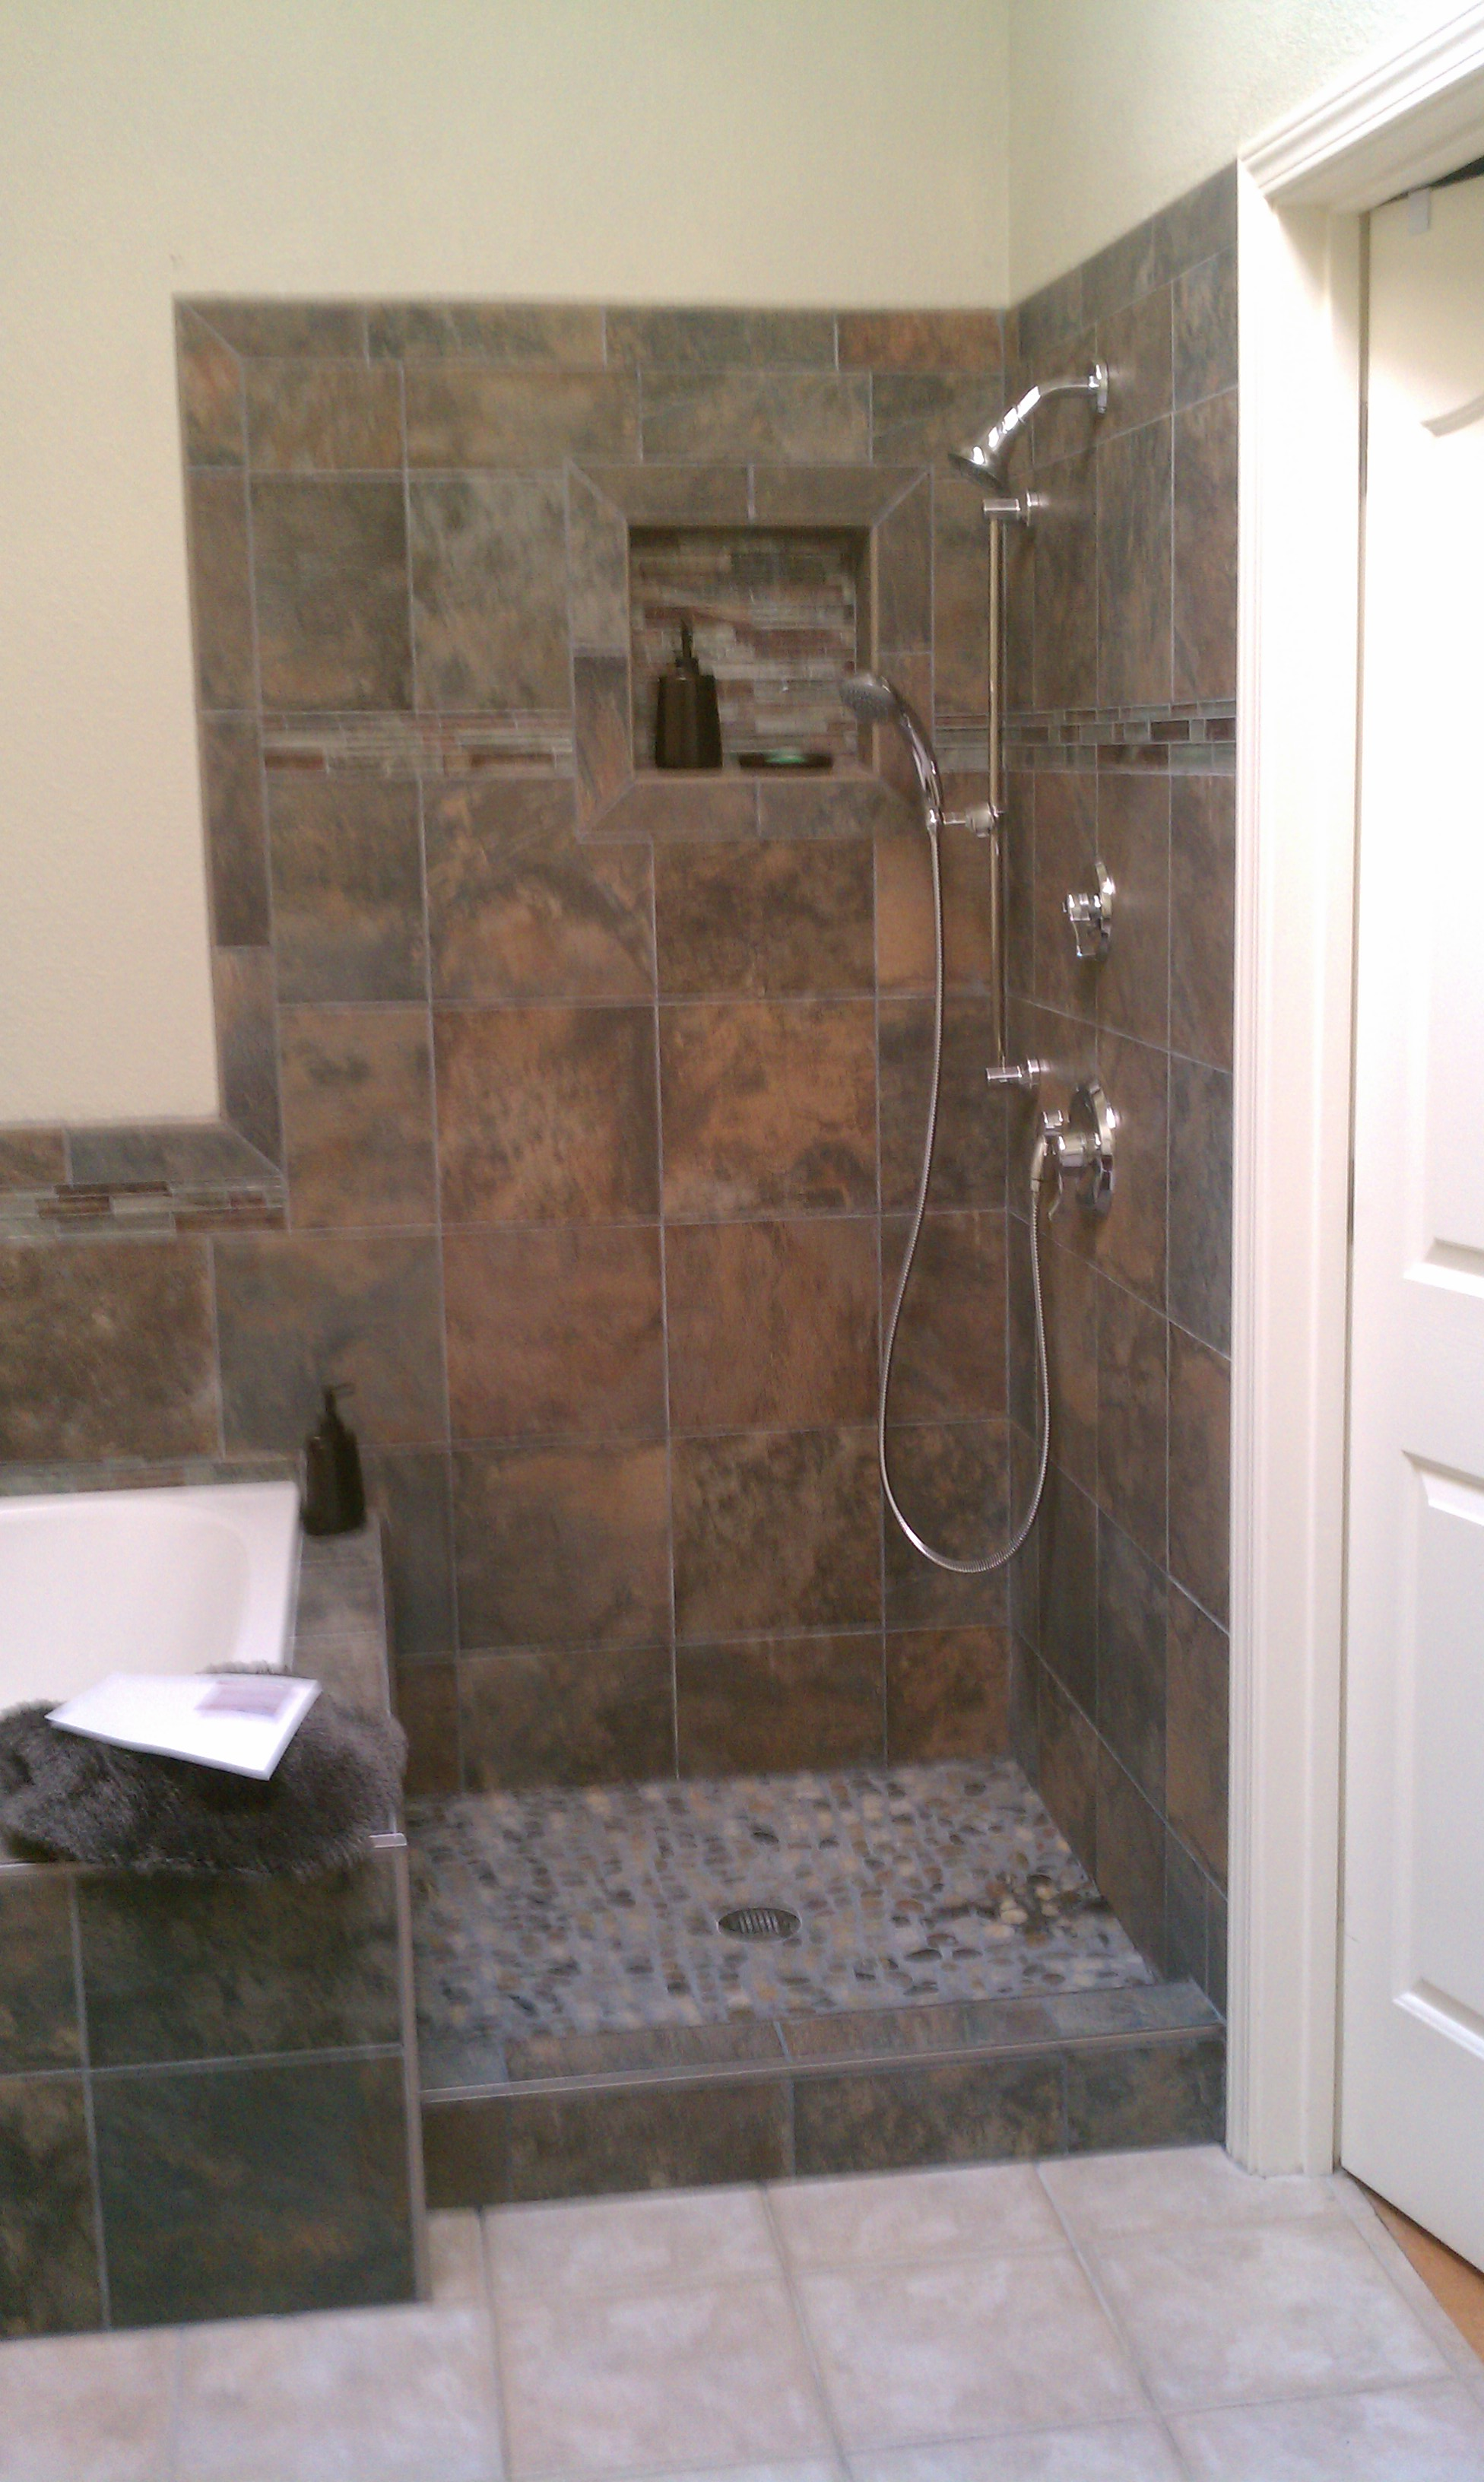 Bathroom remodel by cwi general contractor in livermore - General contractor bathroom remodel ...